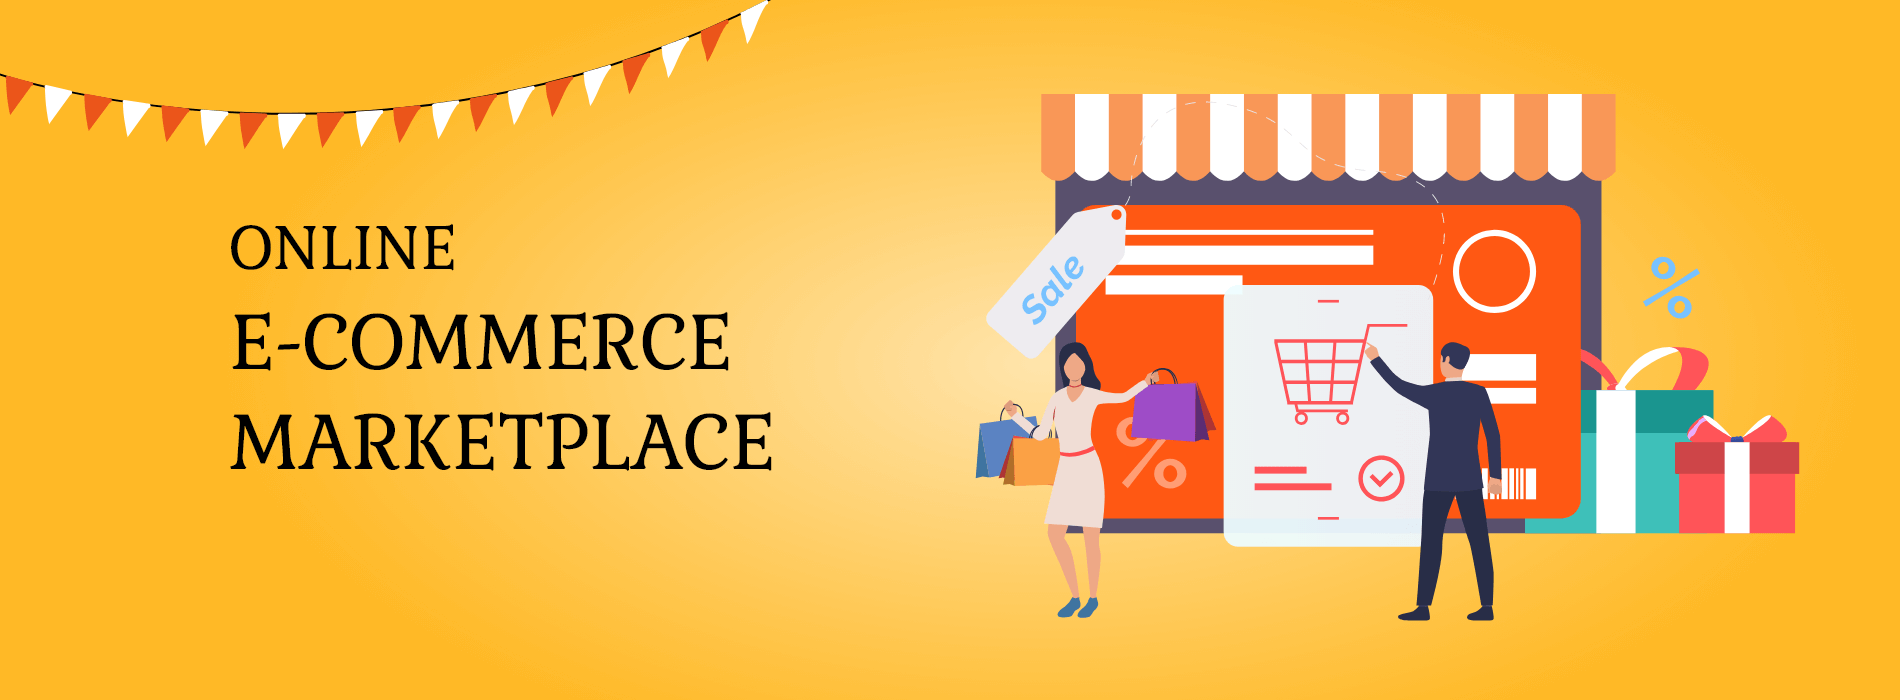 The Most Common Challenges of an Online Ecommerce Marketplace